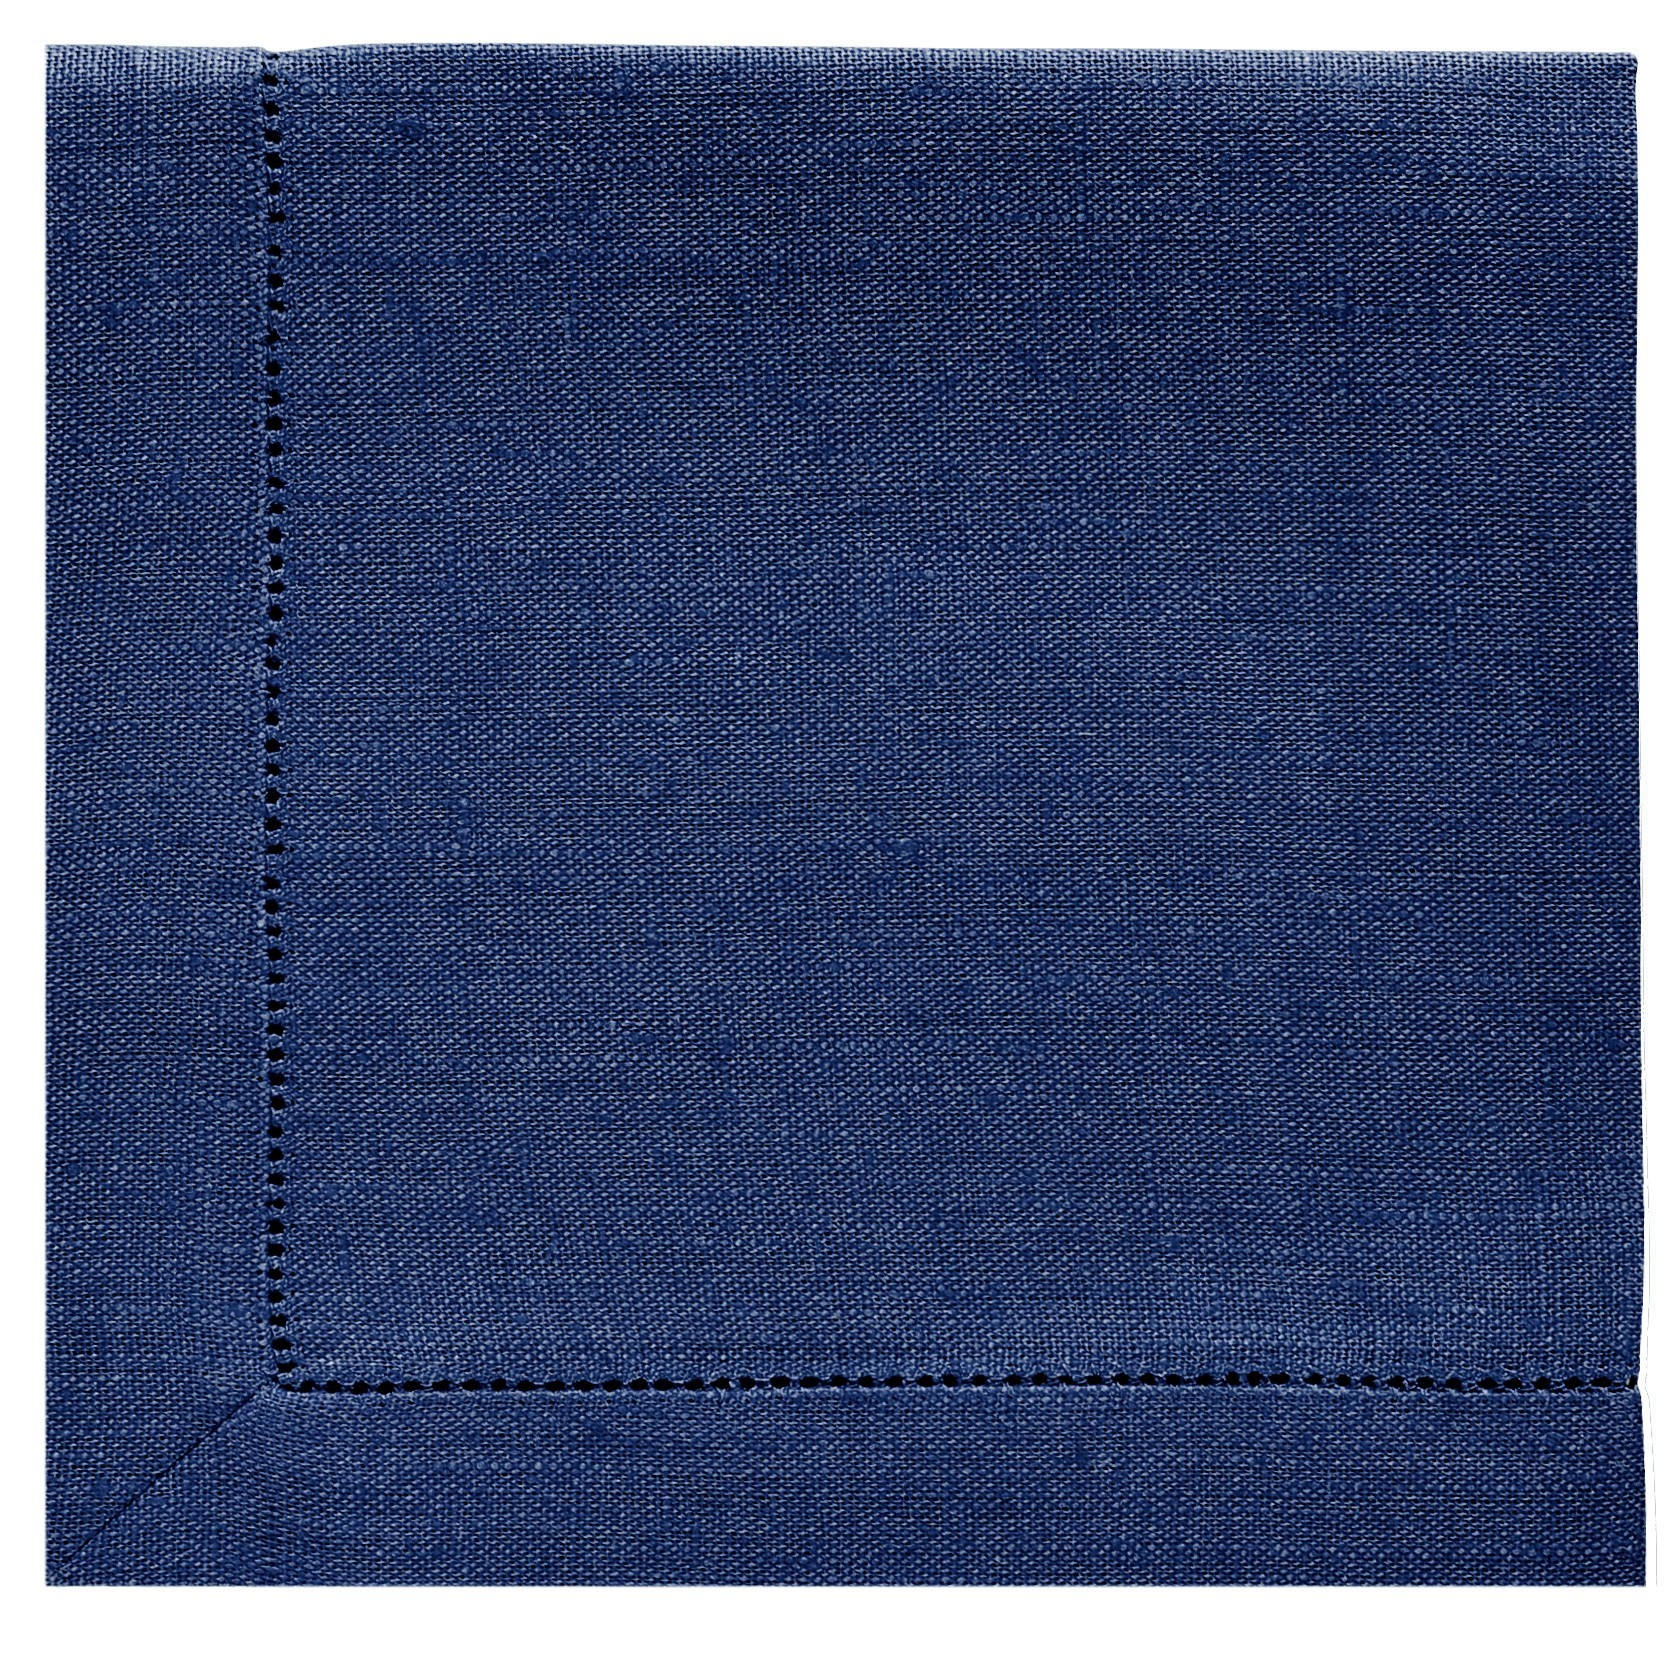 NAPKIN <br />dark blue